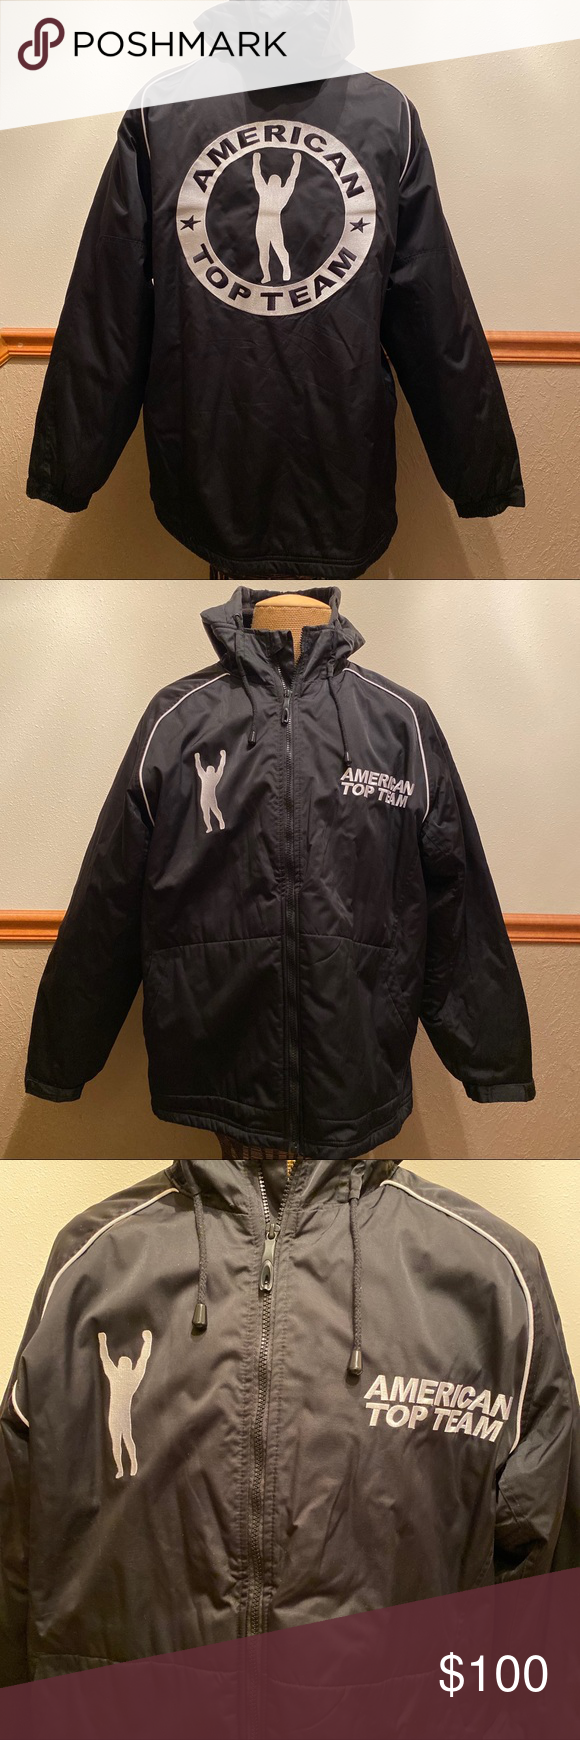 Official Fight Team American Top Team Jacket Team Jackets Jackets Clothes Design [ 1740 x 580 Pixel ]